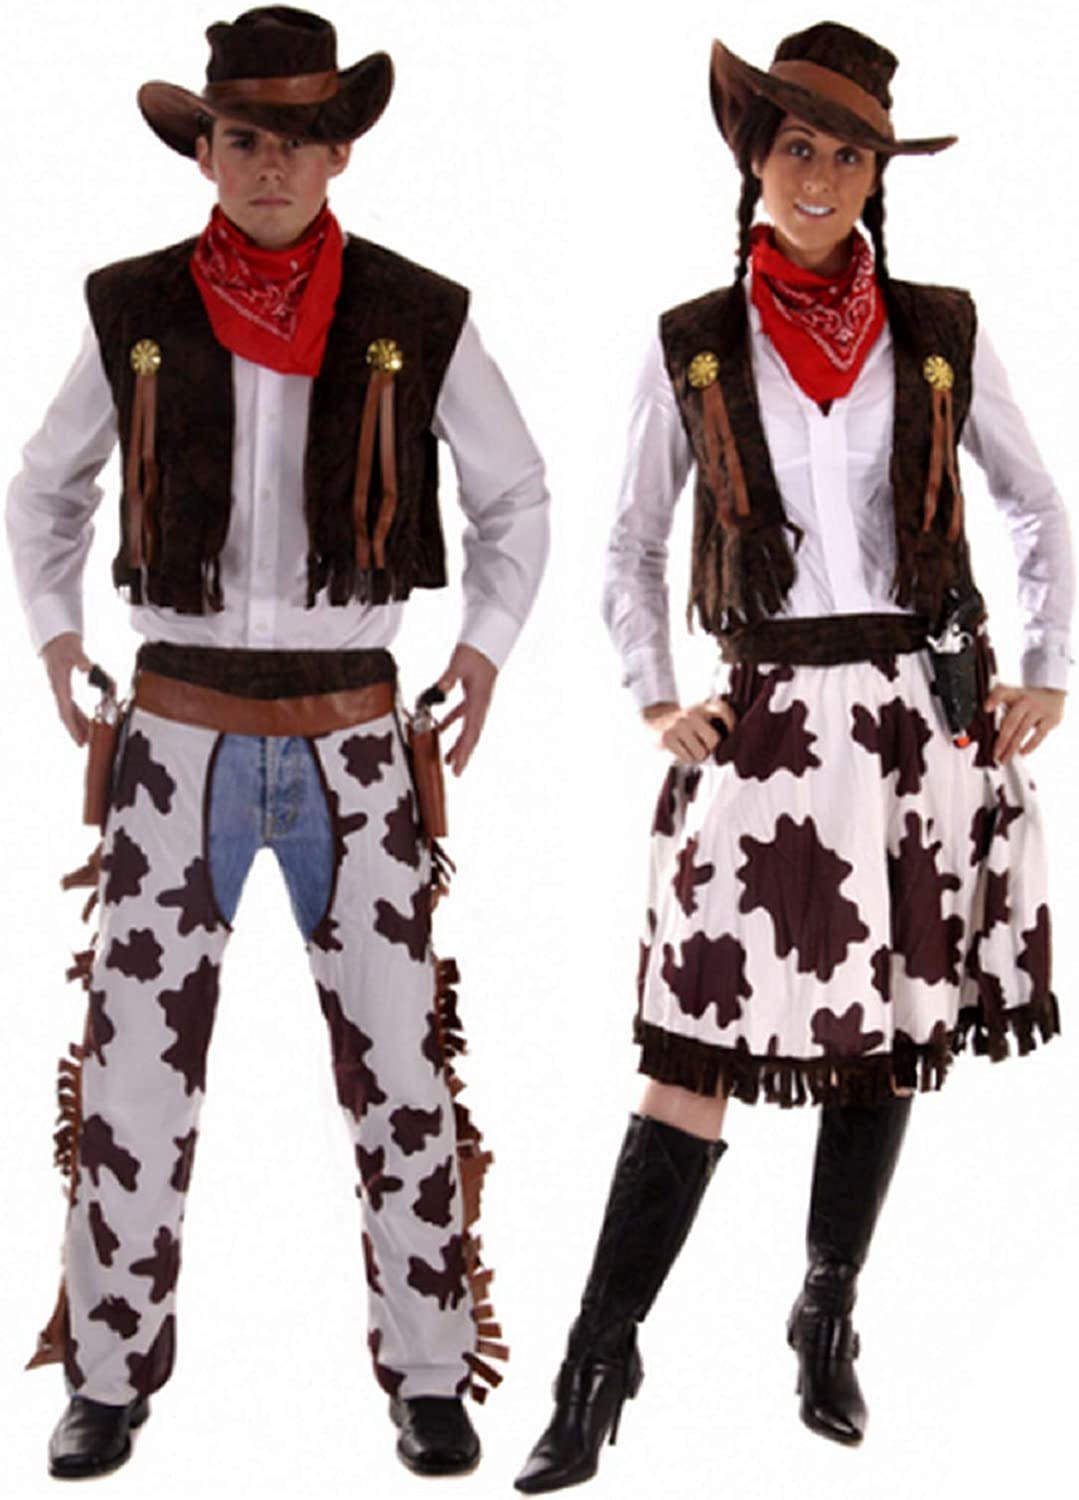 Couples Cowboy & Cowgirl Woody & Jessie Wild West Fancy Dress Outfits Plus  Size & Standard (Ladies 5-5 & Mens STD)